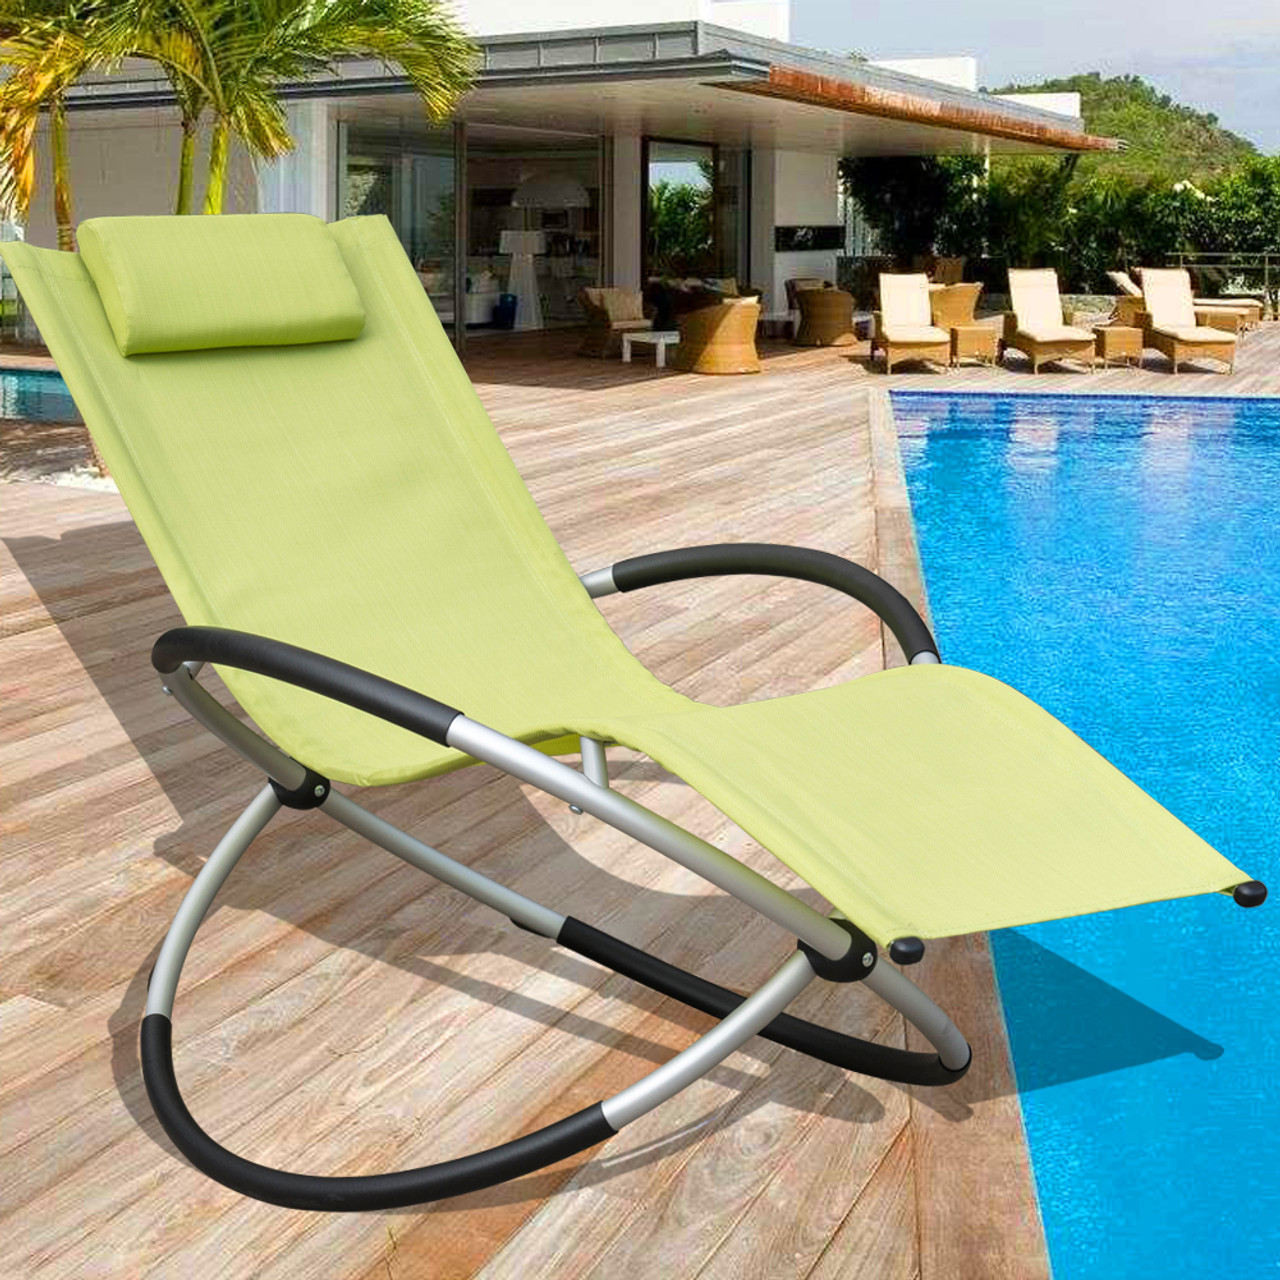 Outside Lounge Chairs Orbital Zero Gravity Folding Rocking Patio Lounge Chair With Pillow